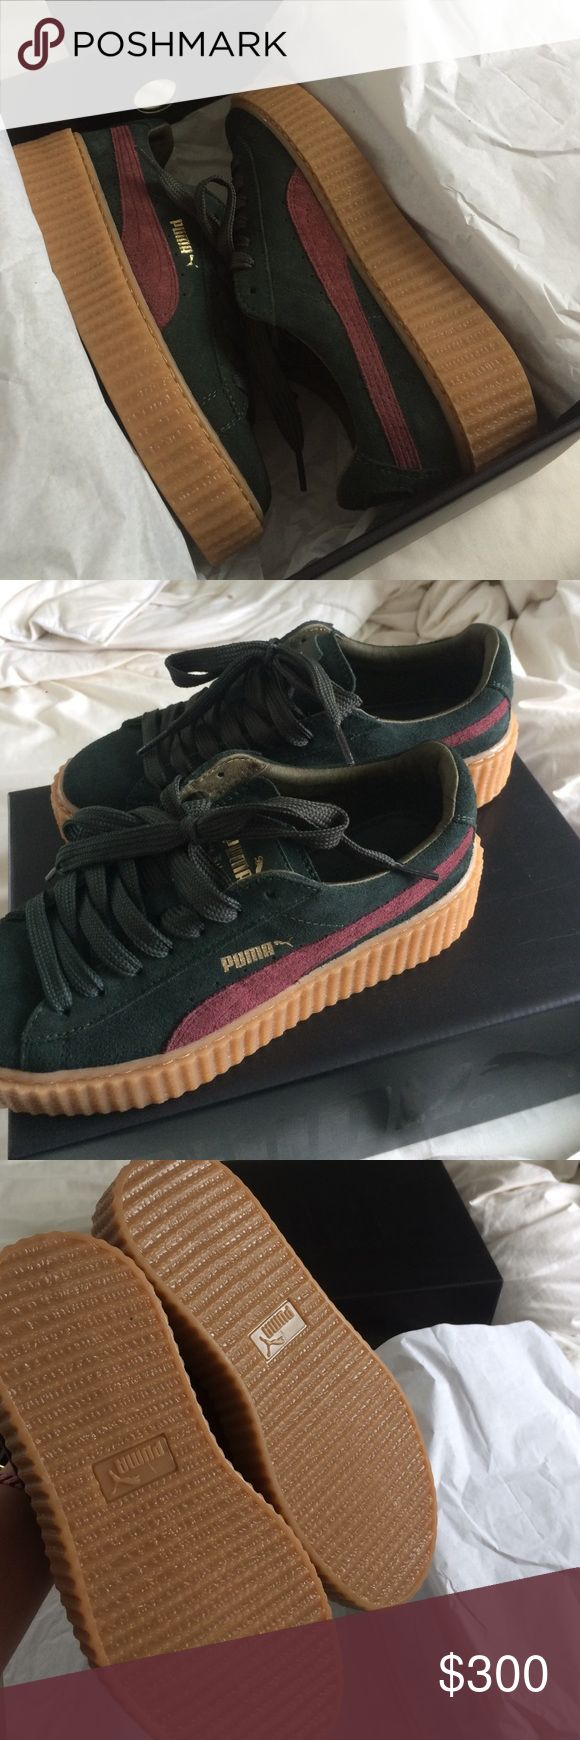 puma fenty green bordeaux never worn, come with extra lace and a fenty suede bag. original box. size 7.5 in women, eur 38 Puma Shoes Sneakers